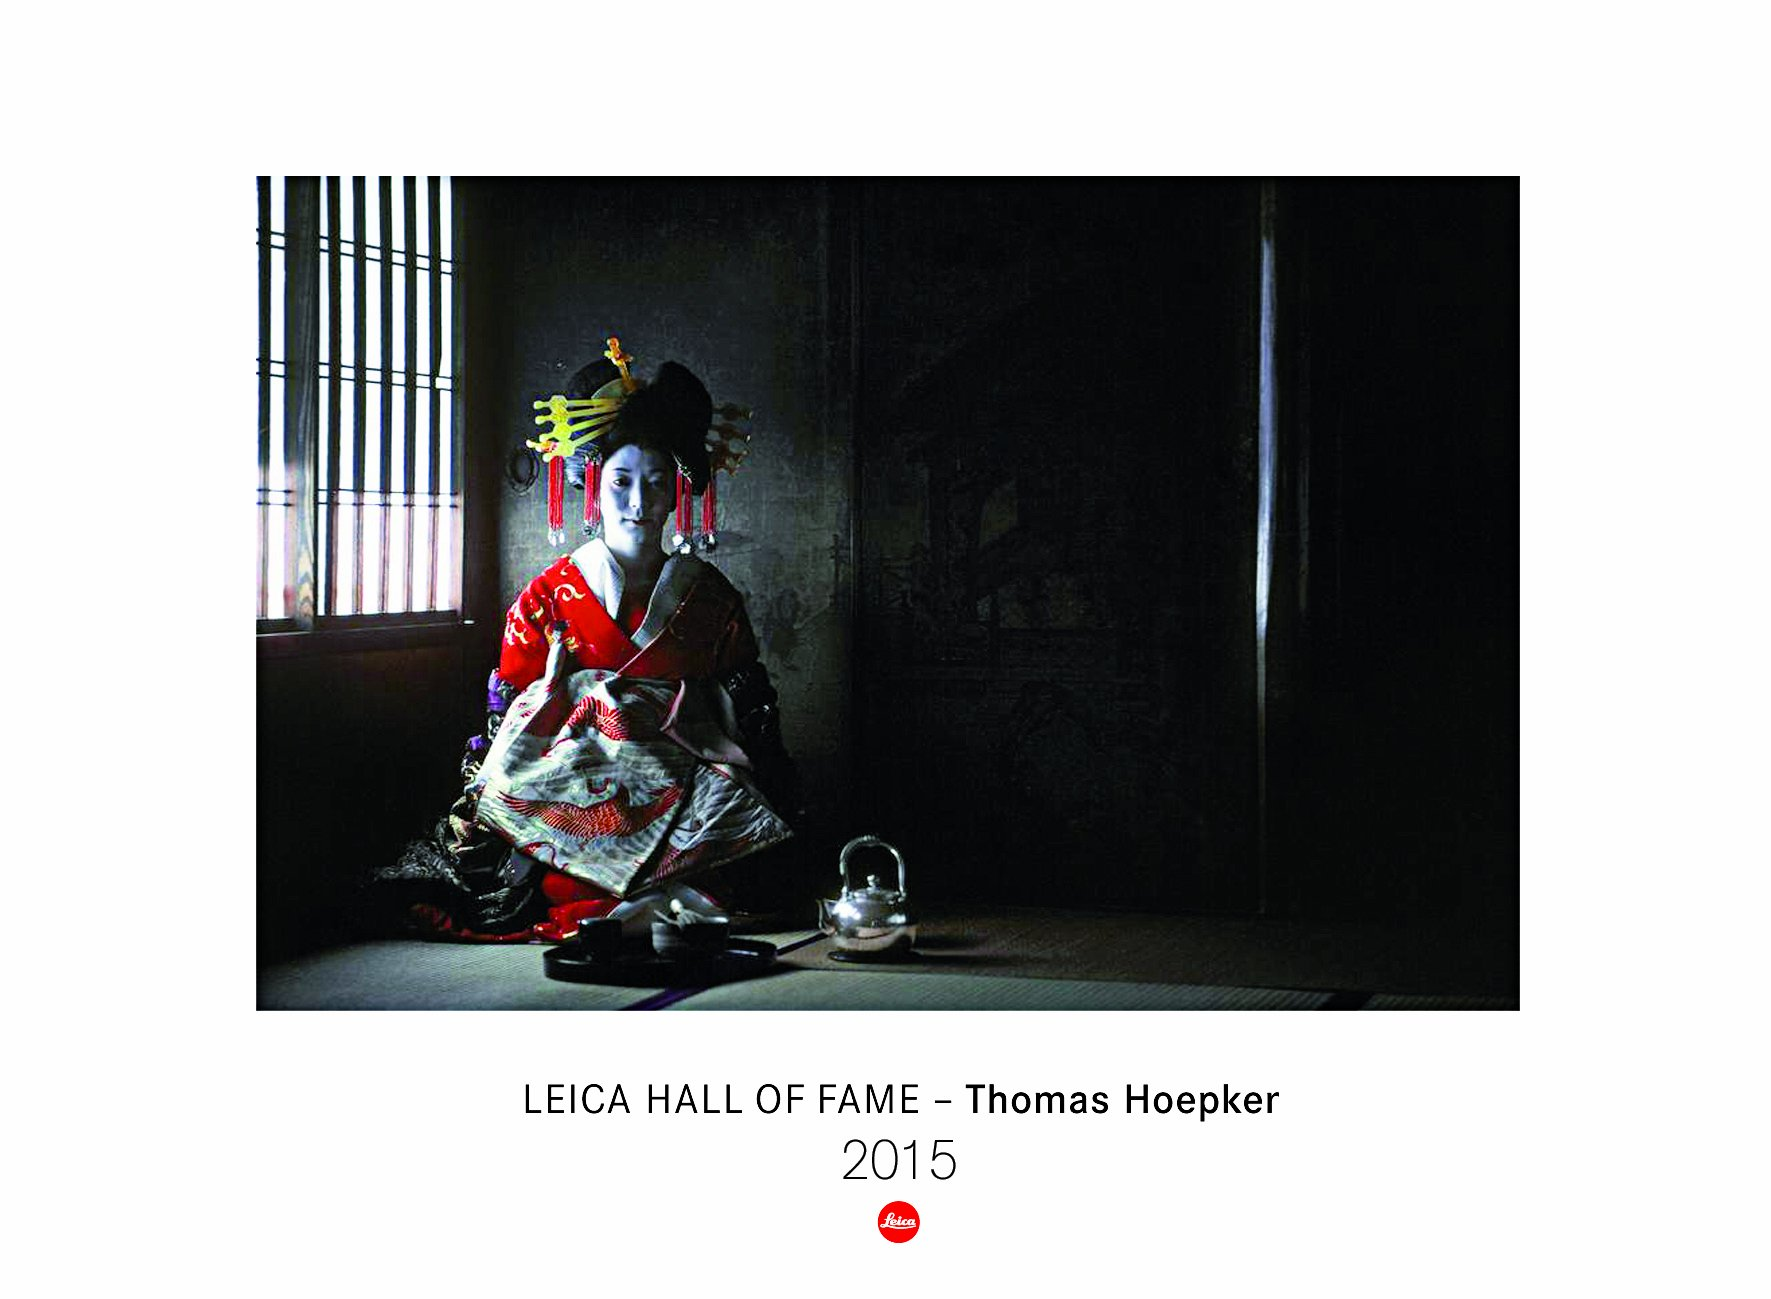 leica-hall-of-fame-2015